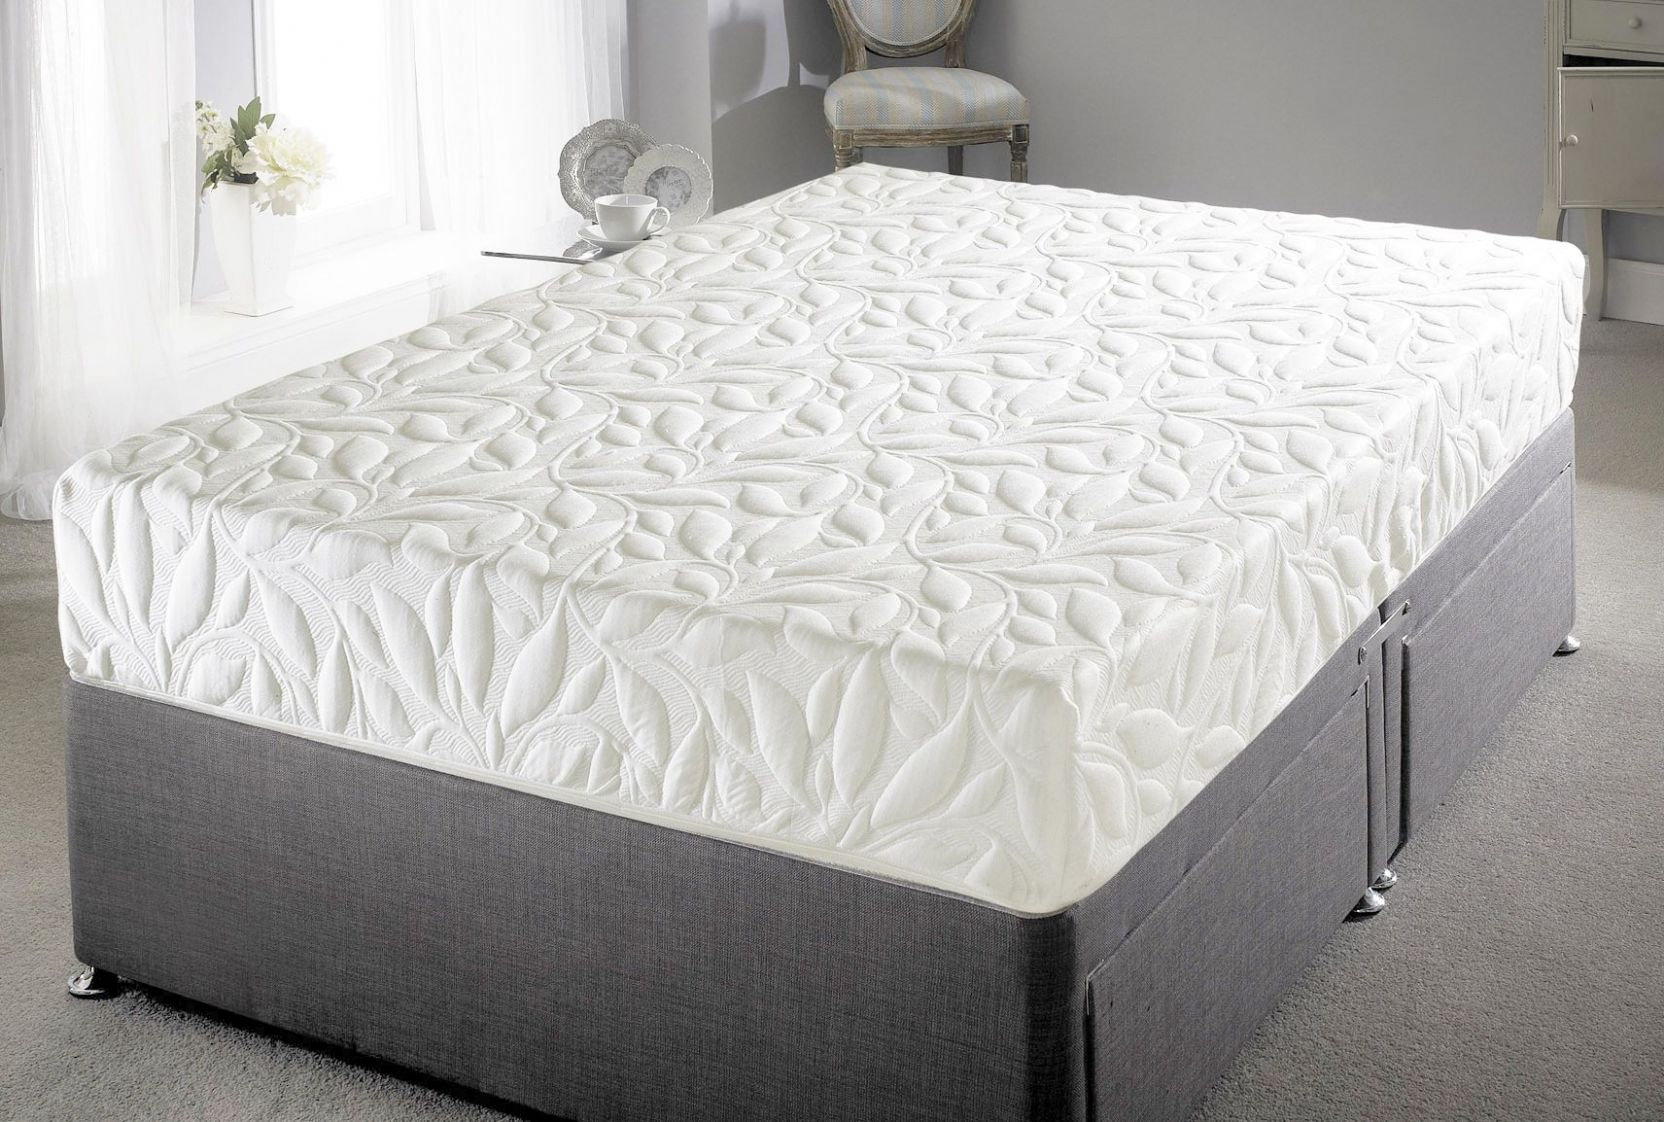 GelFlex Memory Foam Mattress